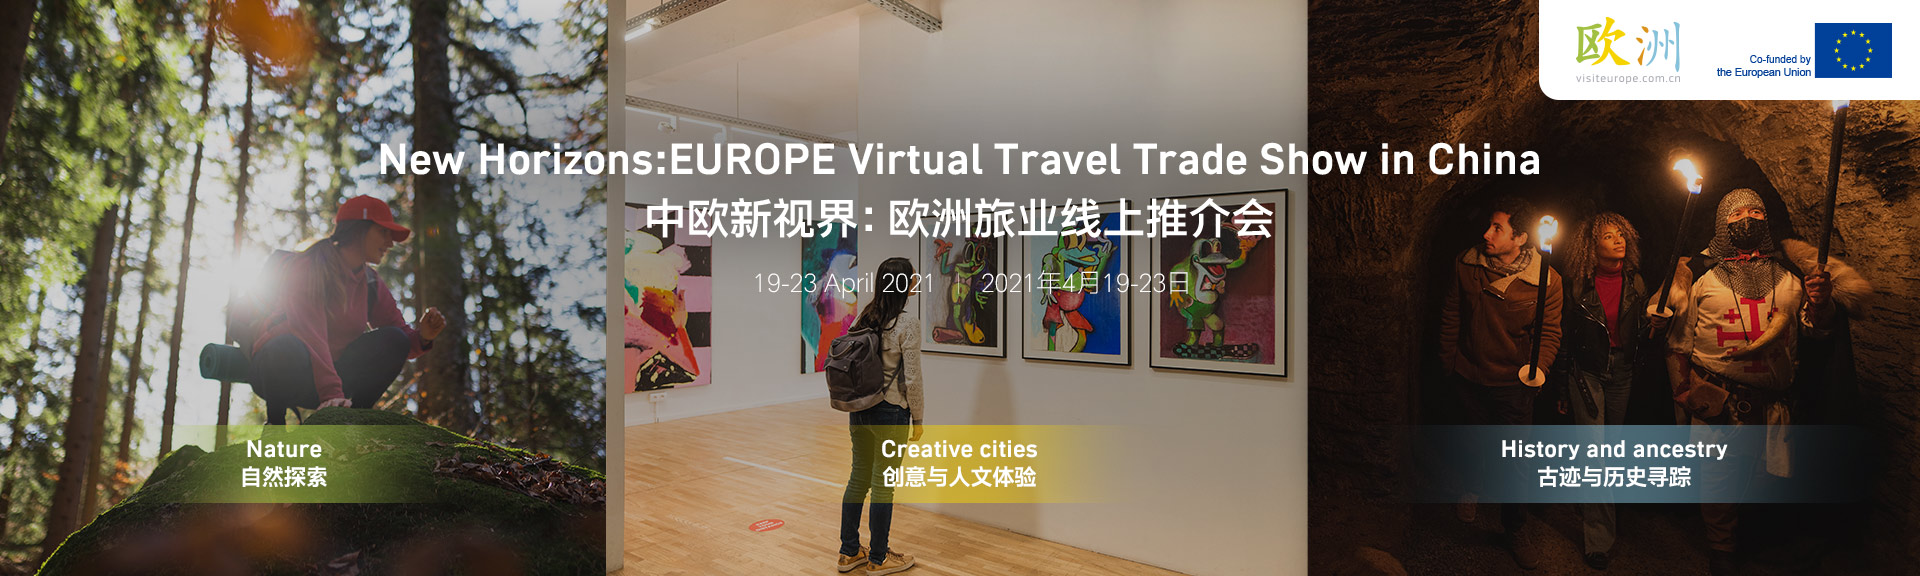 EUROPE Virtual Travel Trade Show to spearhead the recovery of Chinese tourism to Europe